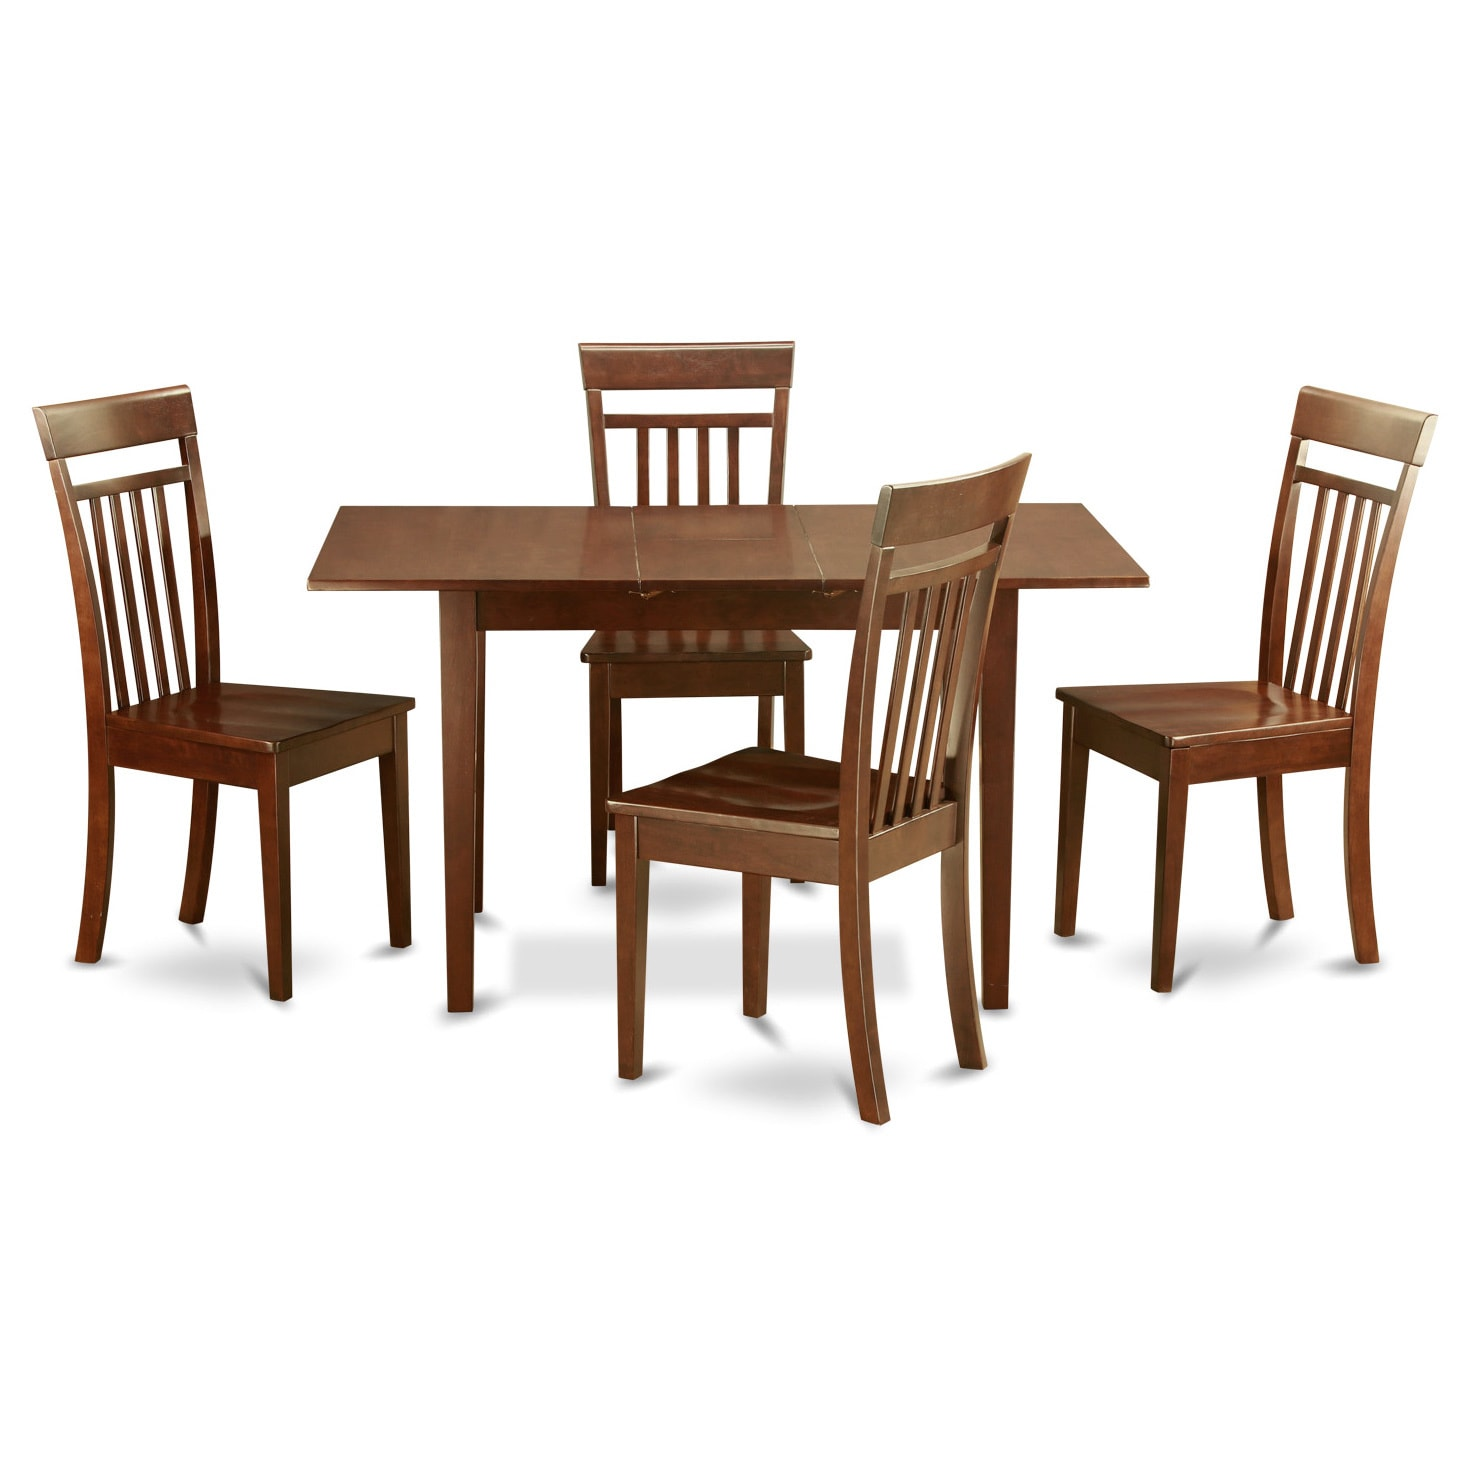 Mahogany Dining Room Table And 4 Dining Room Chairs Chairs 5 Piece Dining Set On Sale Overstock 10201122